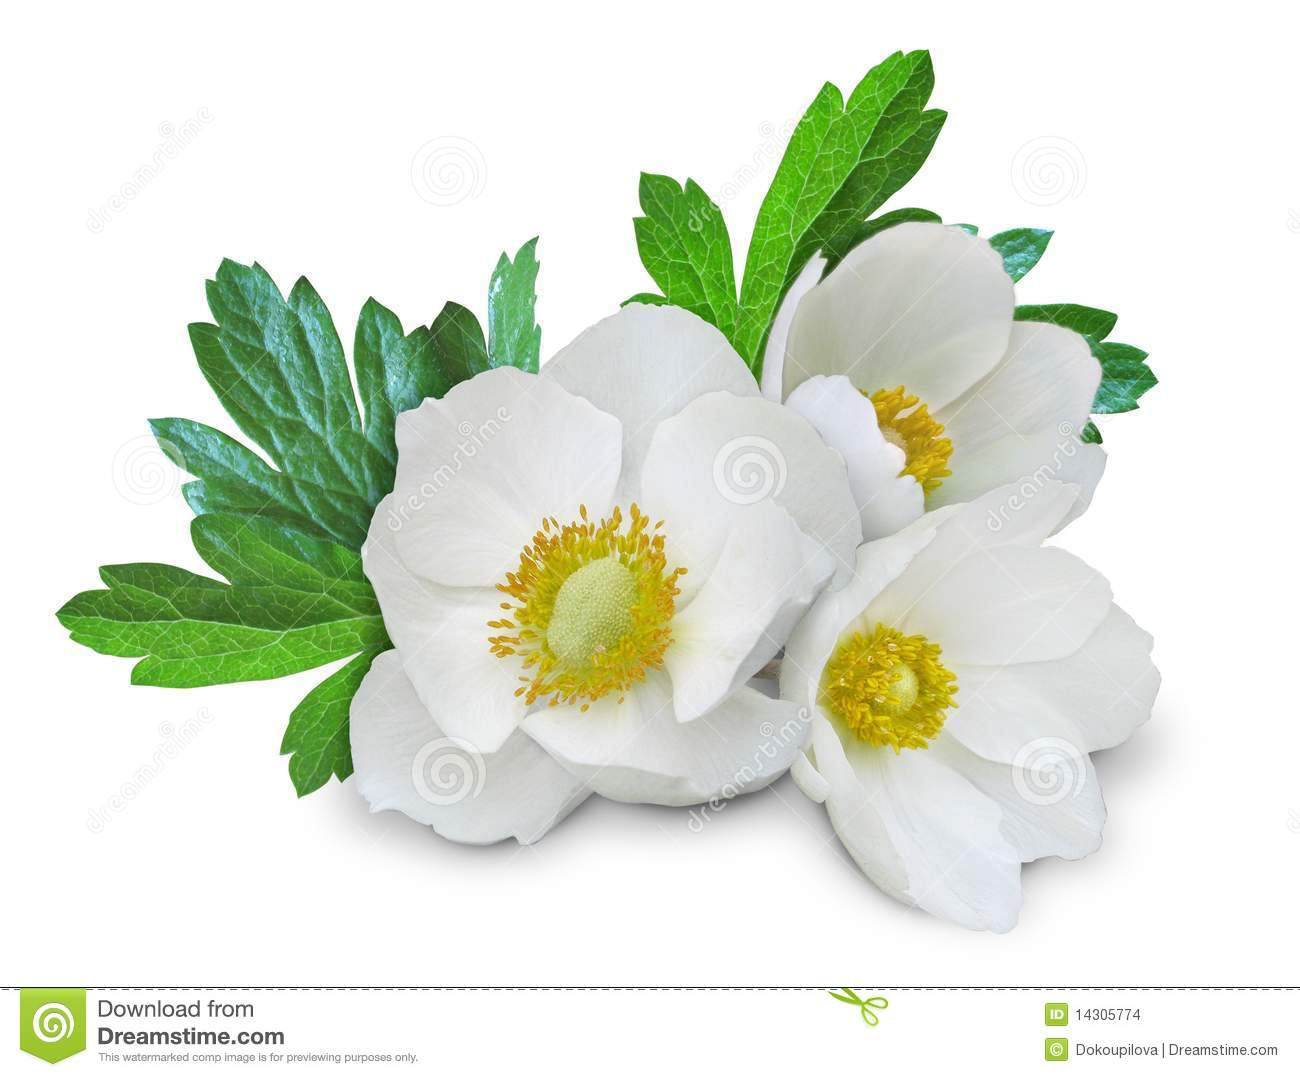 Anemone_white_flowers_isolated_2